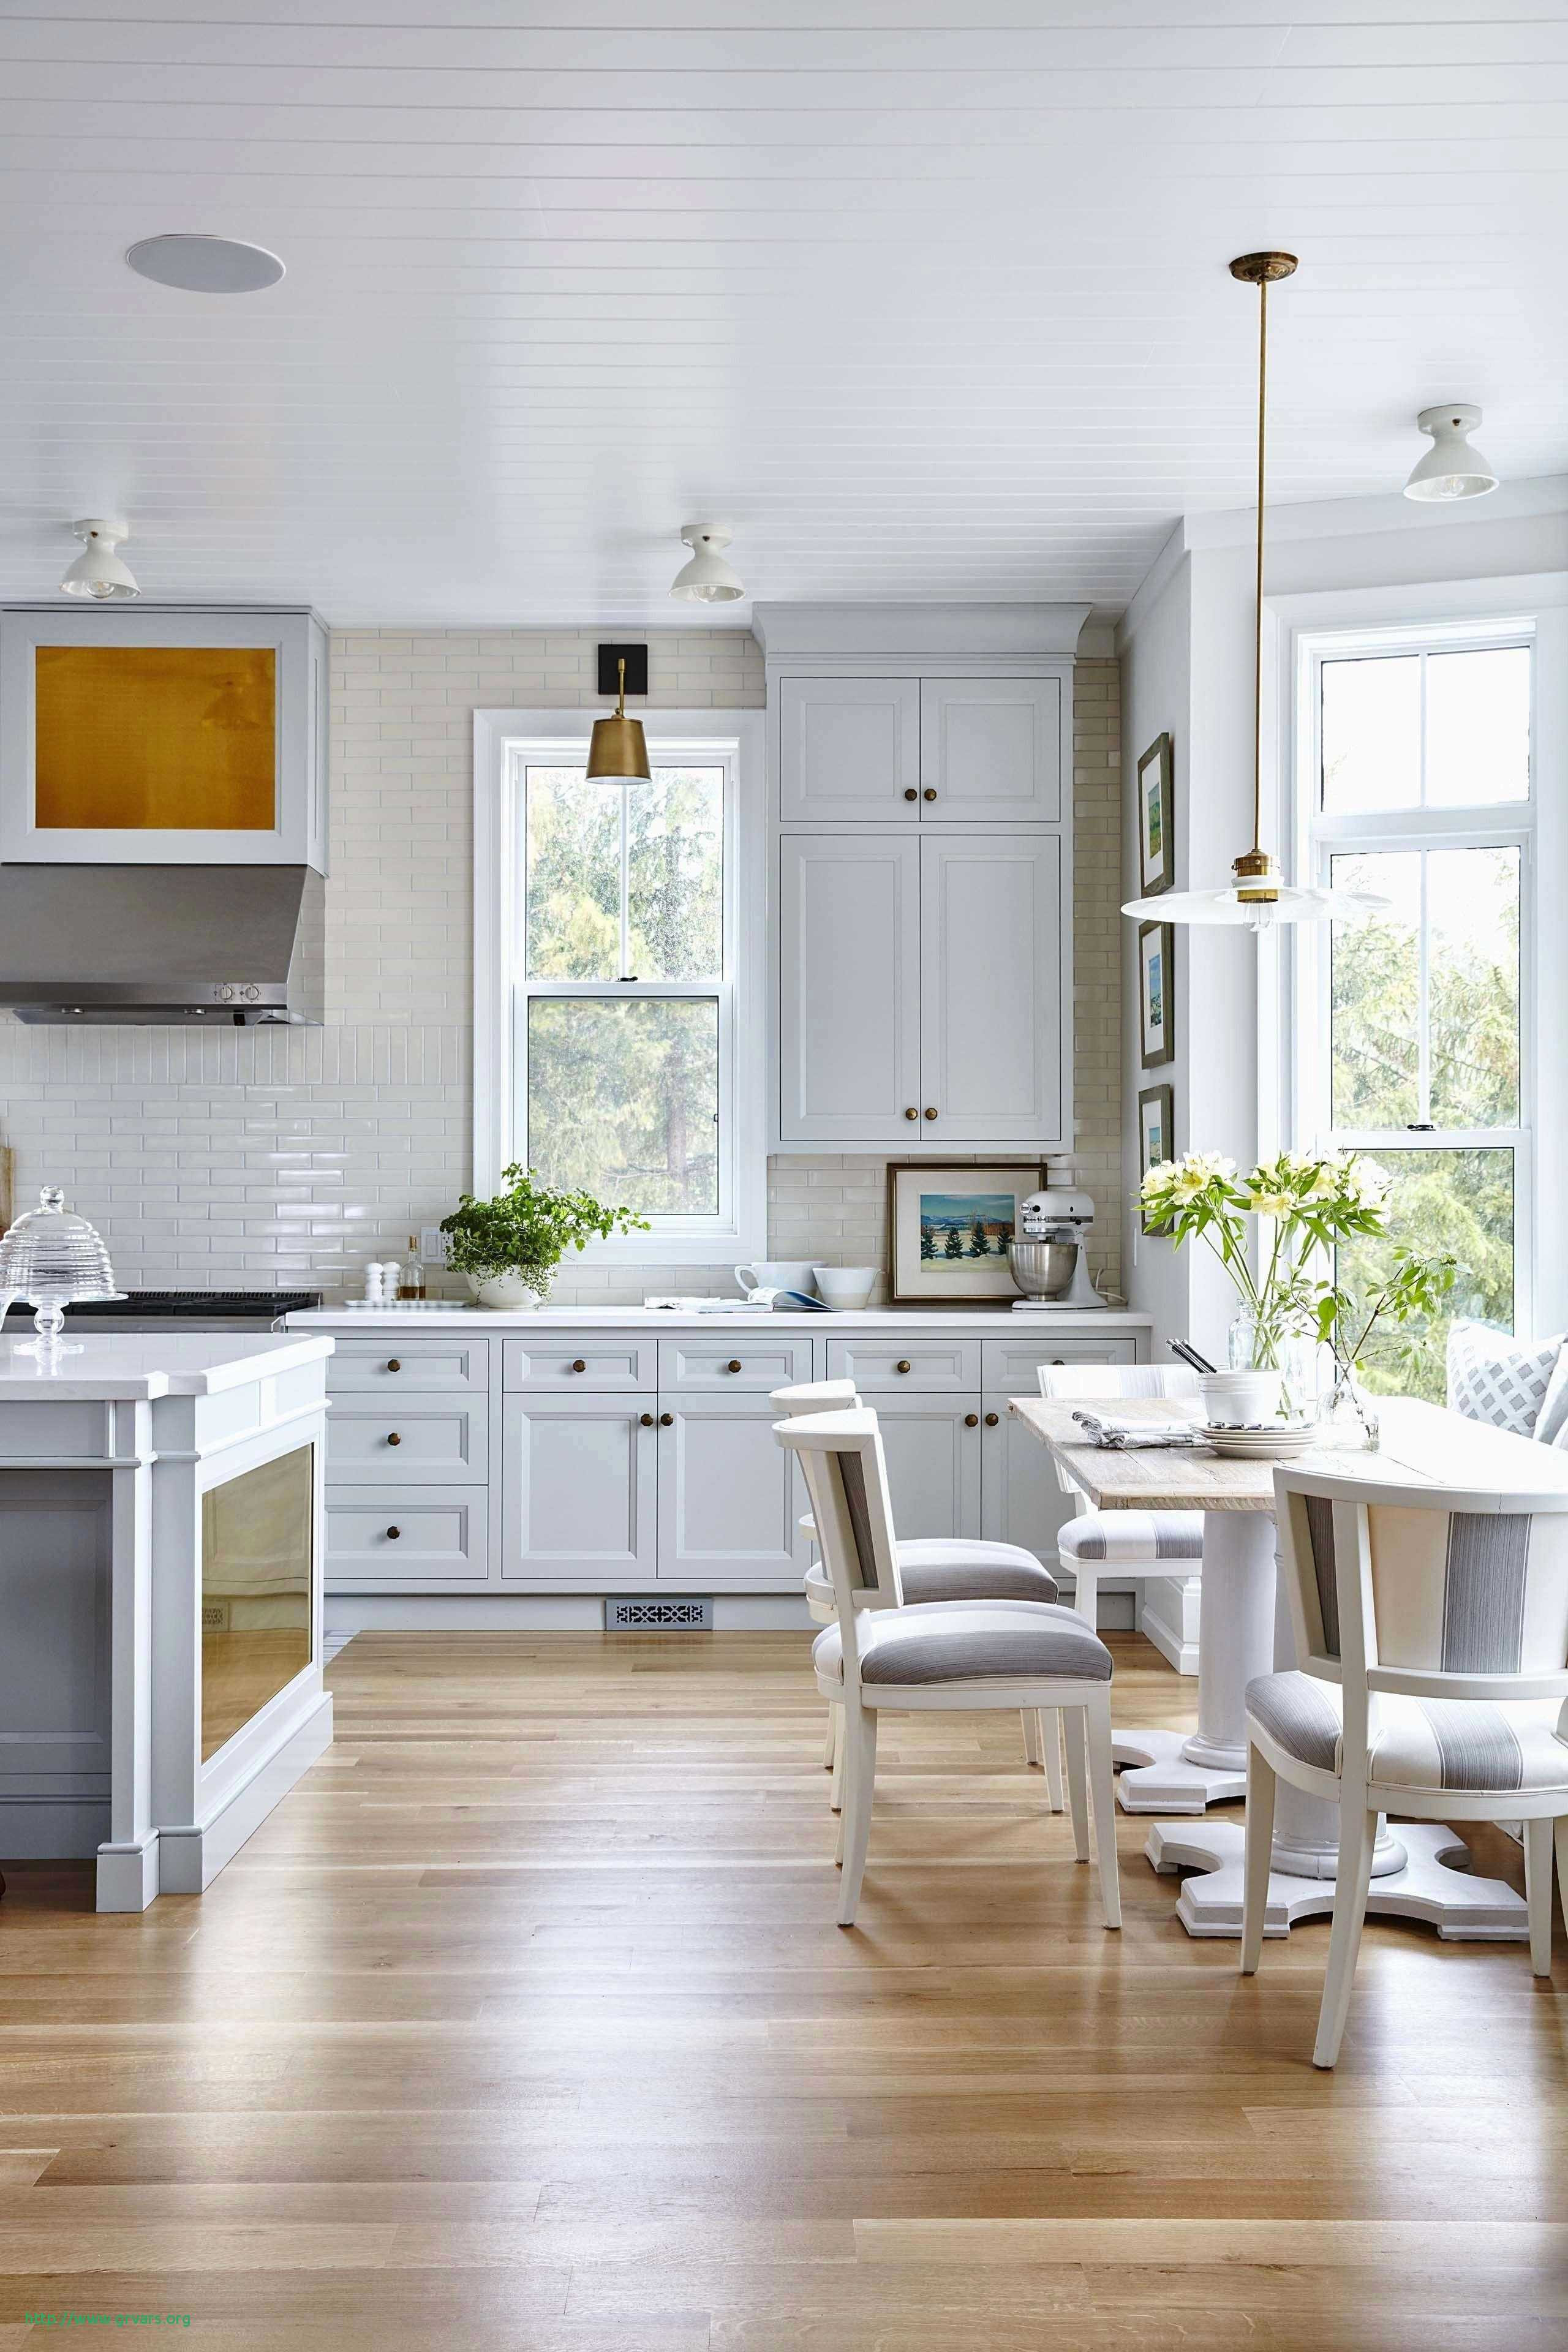 White Cabinets With Hardwood Floors